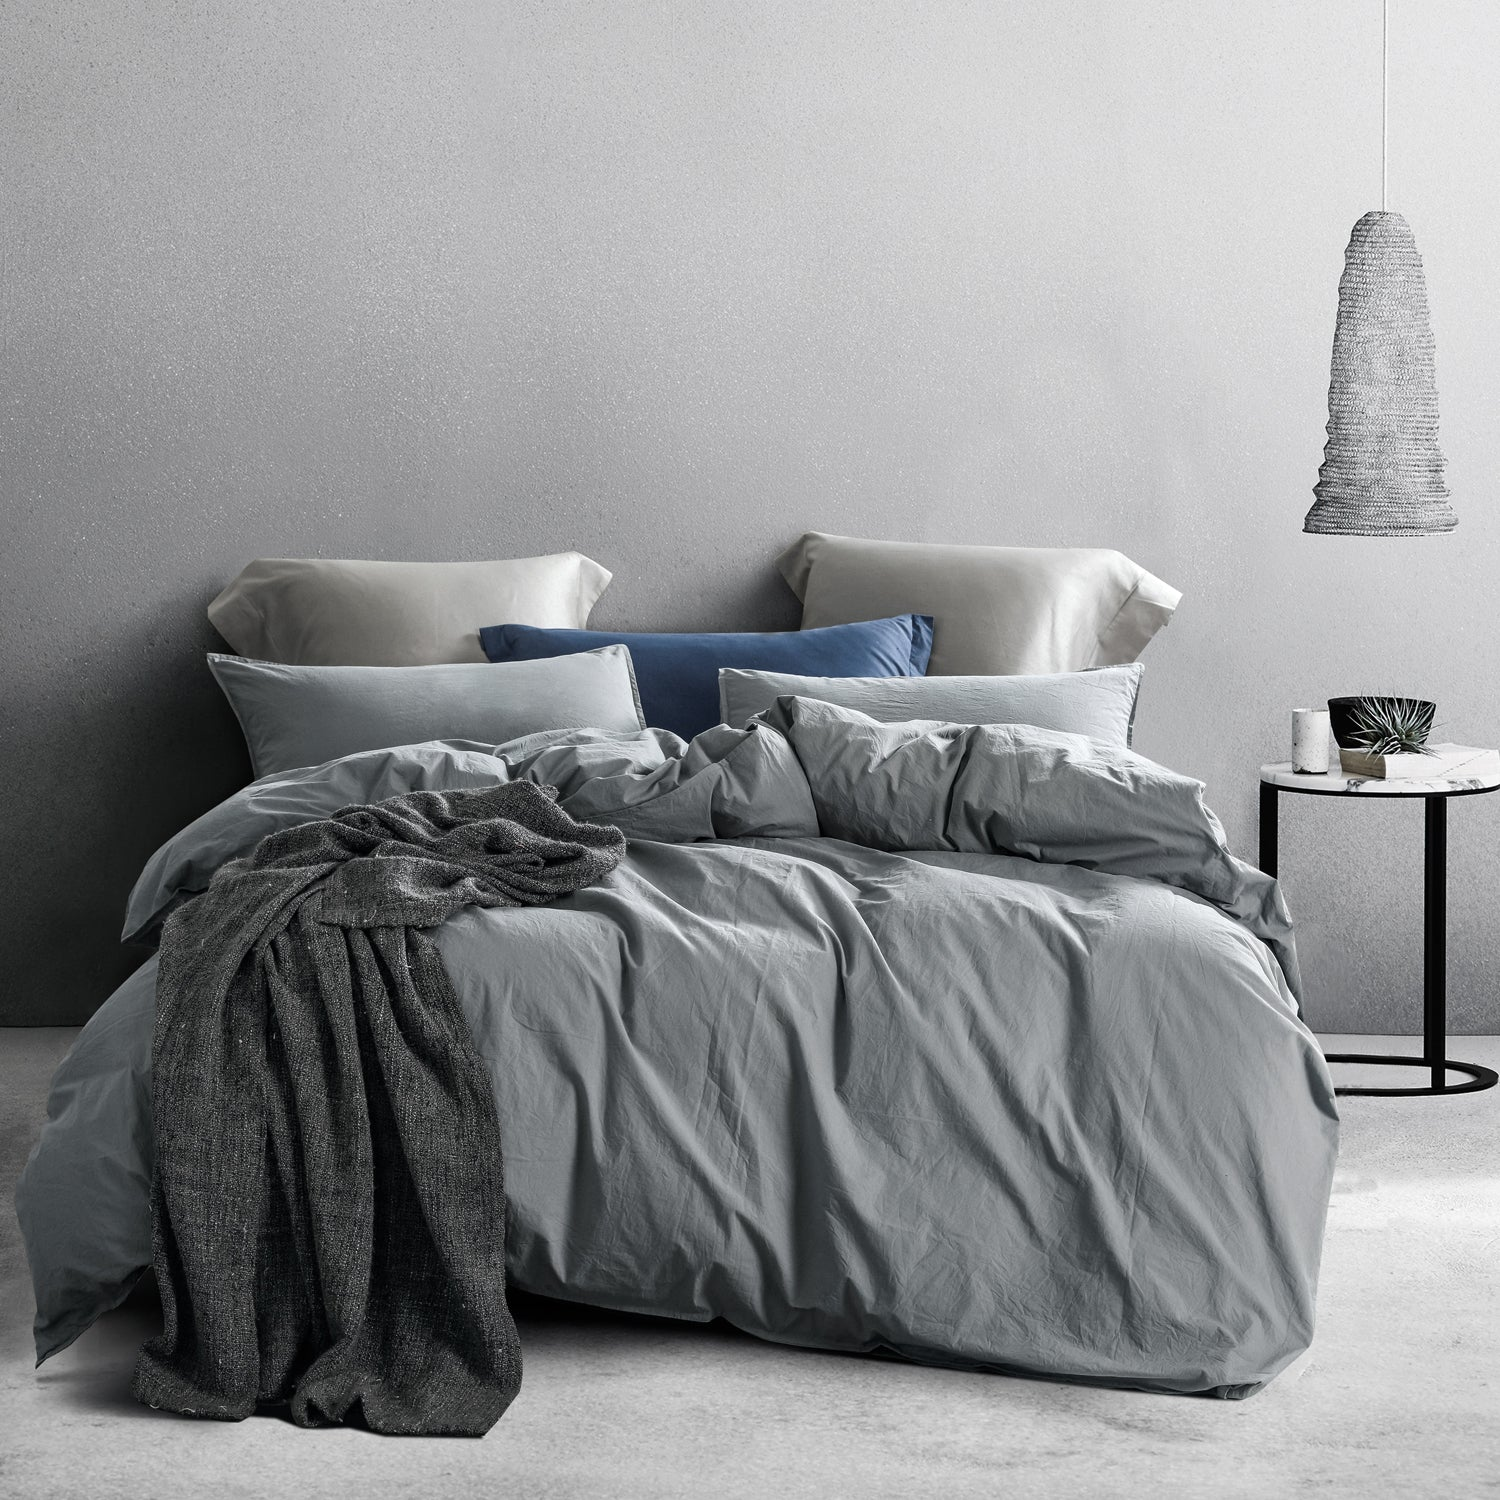 NTBAY 3 Piece Washed Cotton Duvet Cover Set, Grey - NTBAY